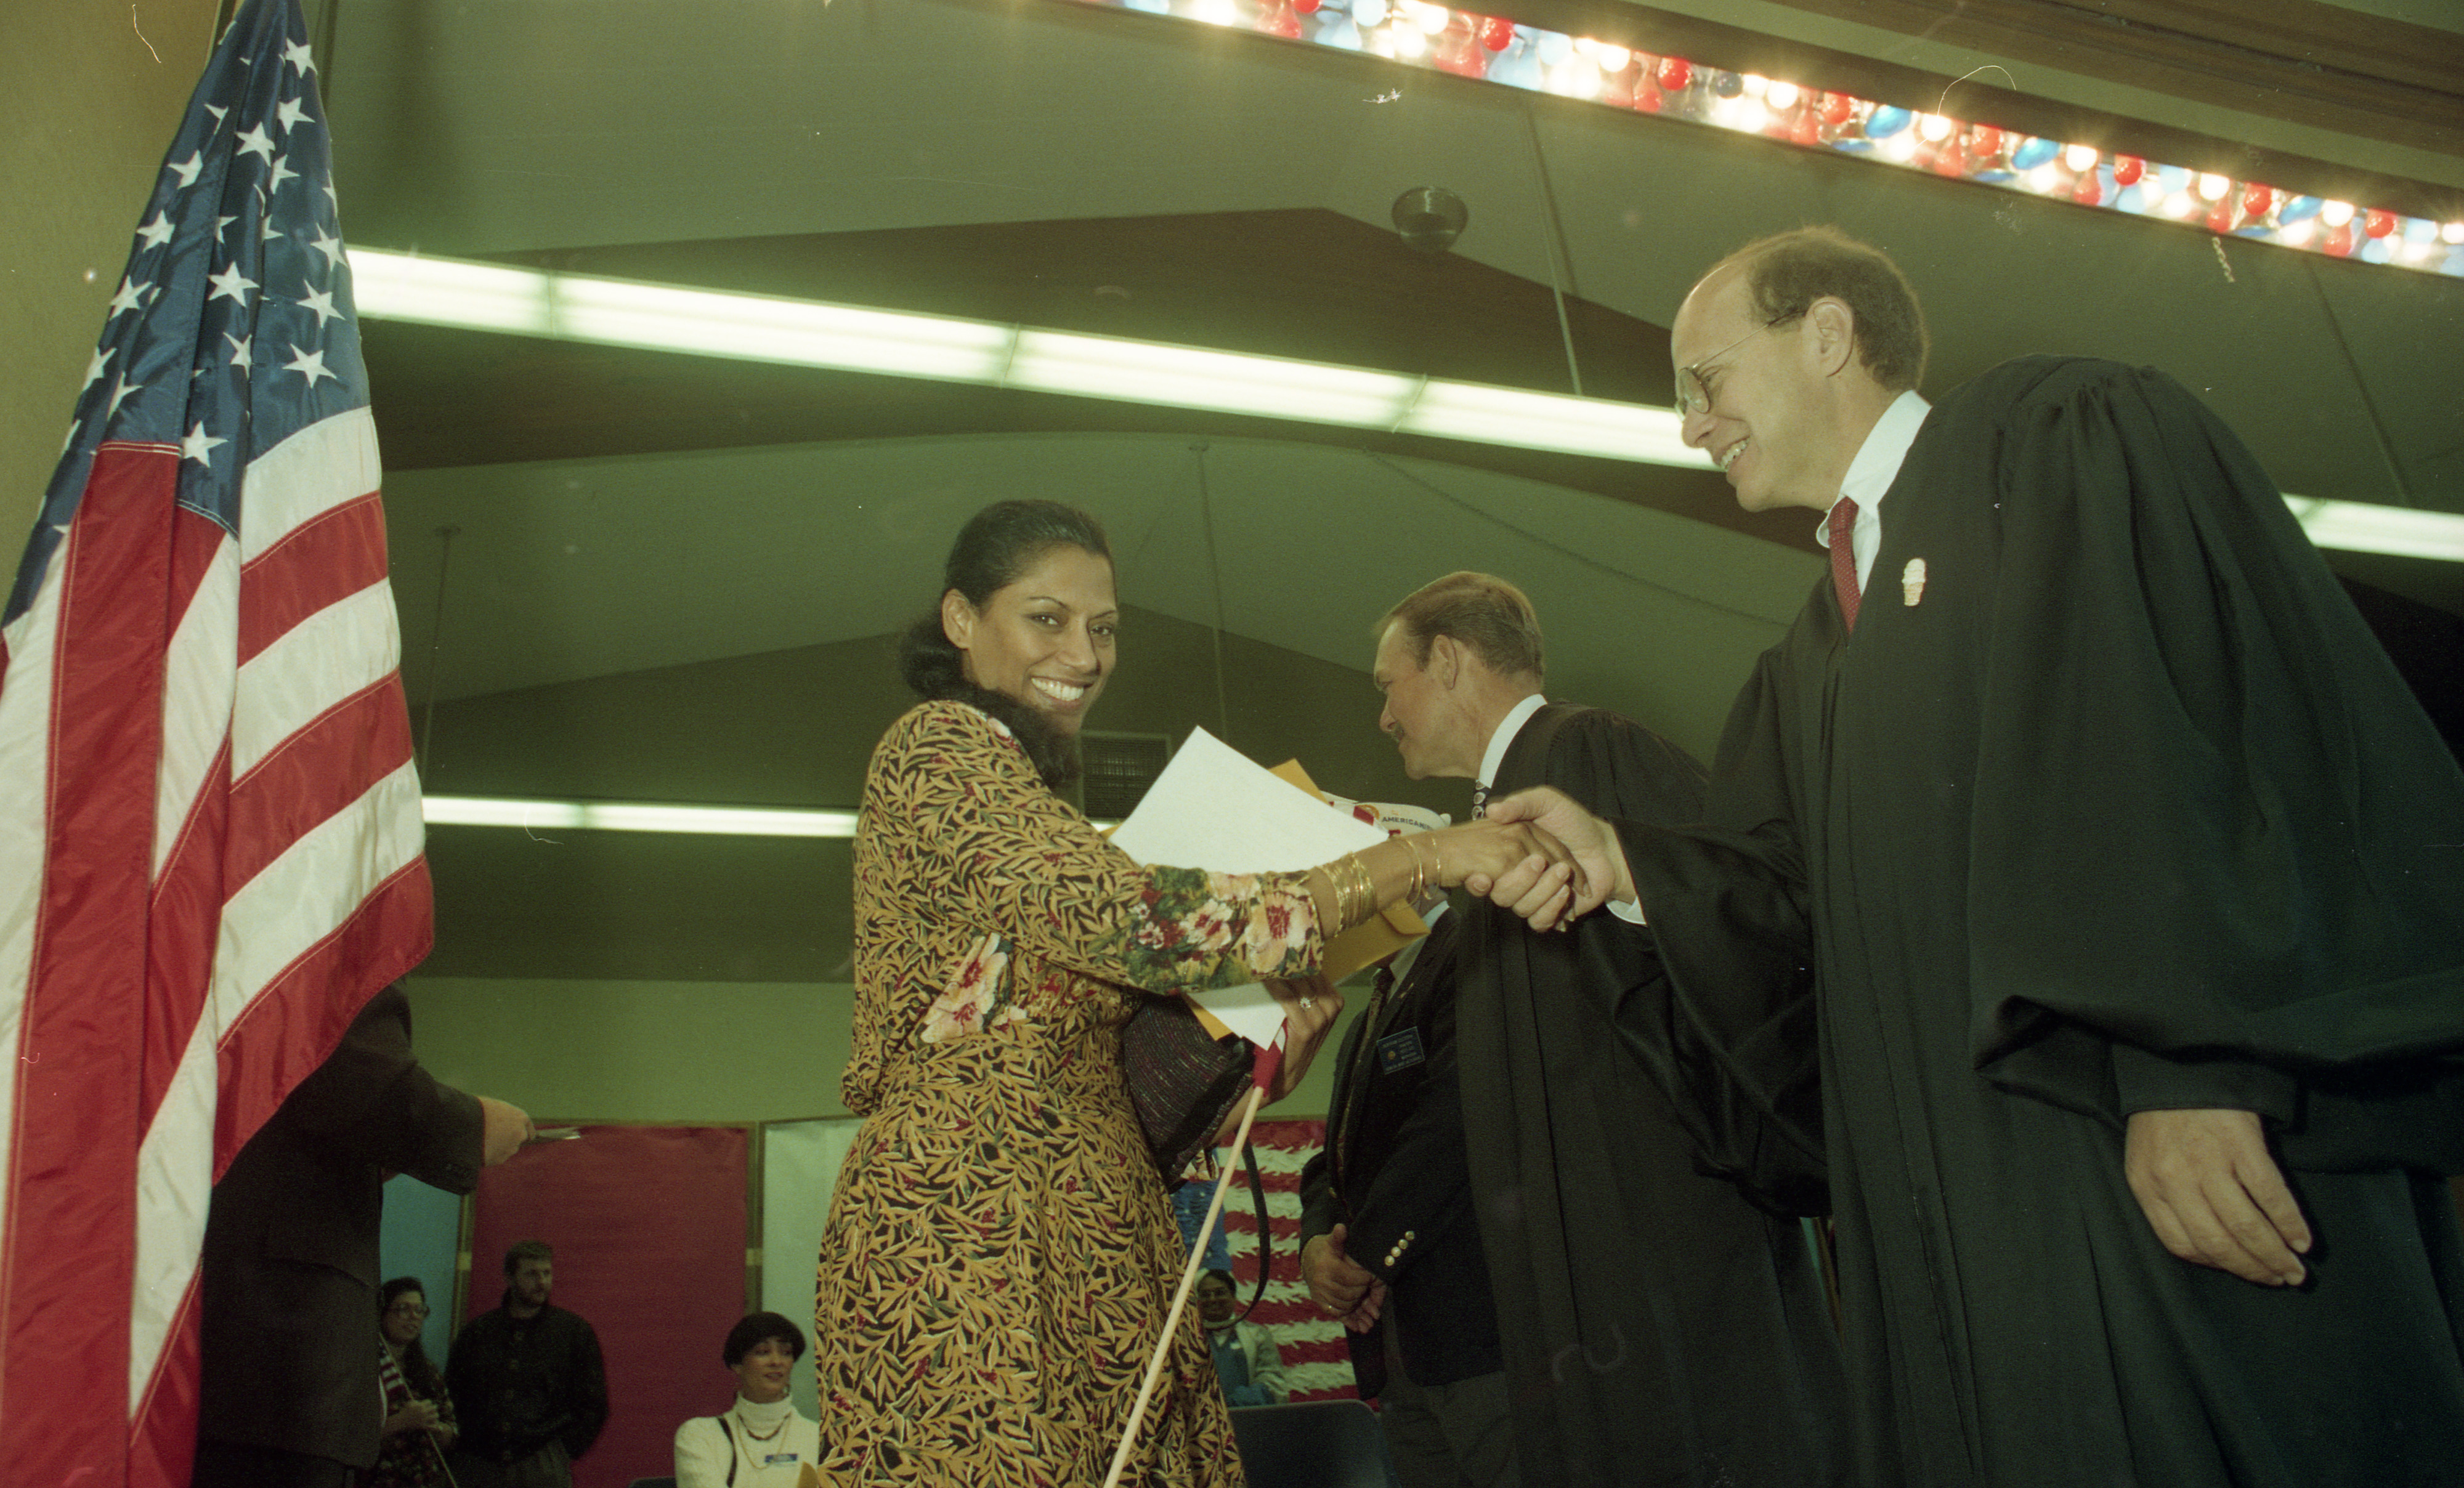 Judge Friedman Congratulates New U.S. Citizen In Ceremony At Houghton Elementary School In Saline, October 1993 image